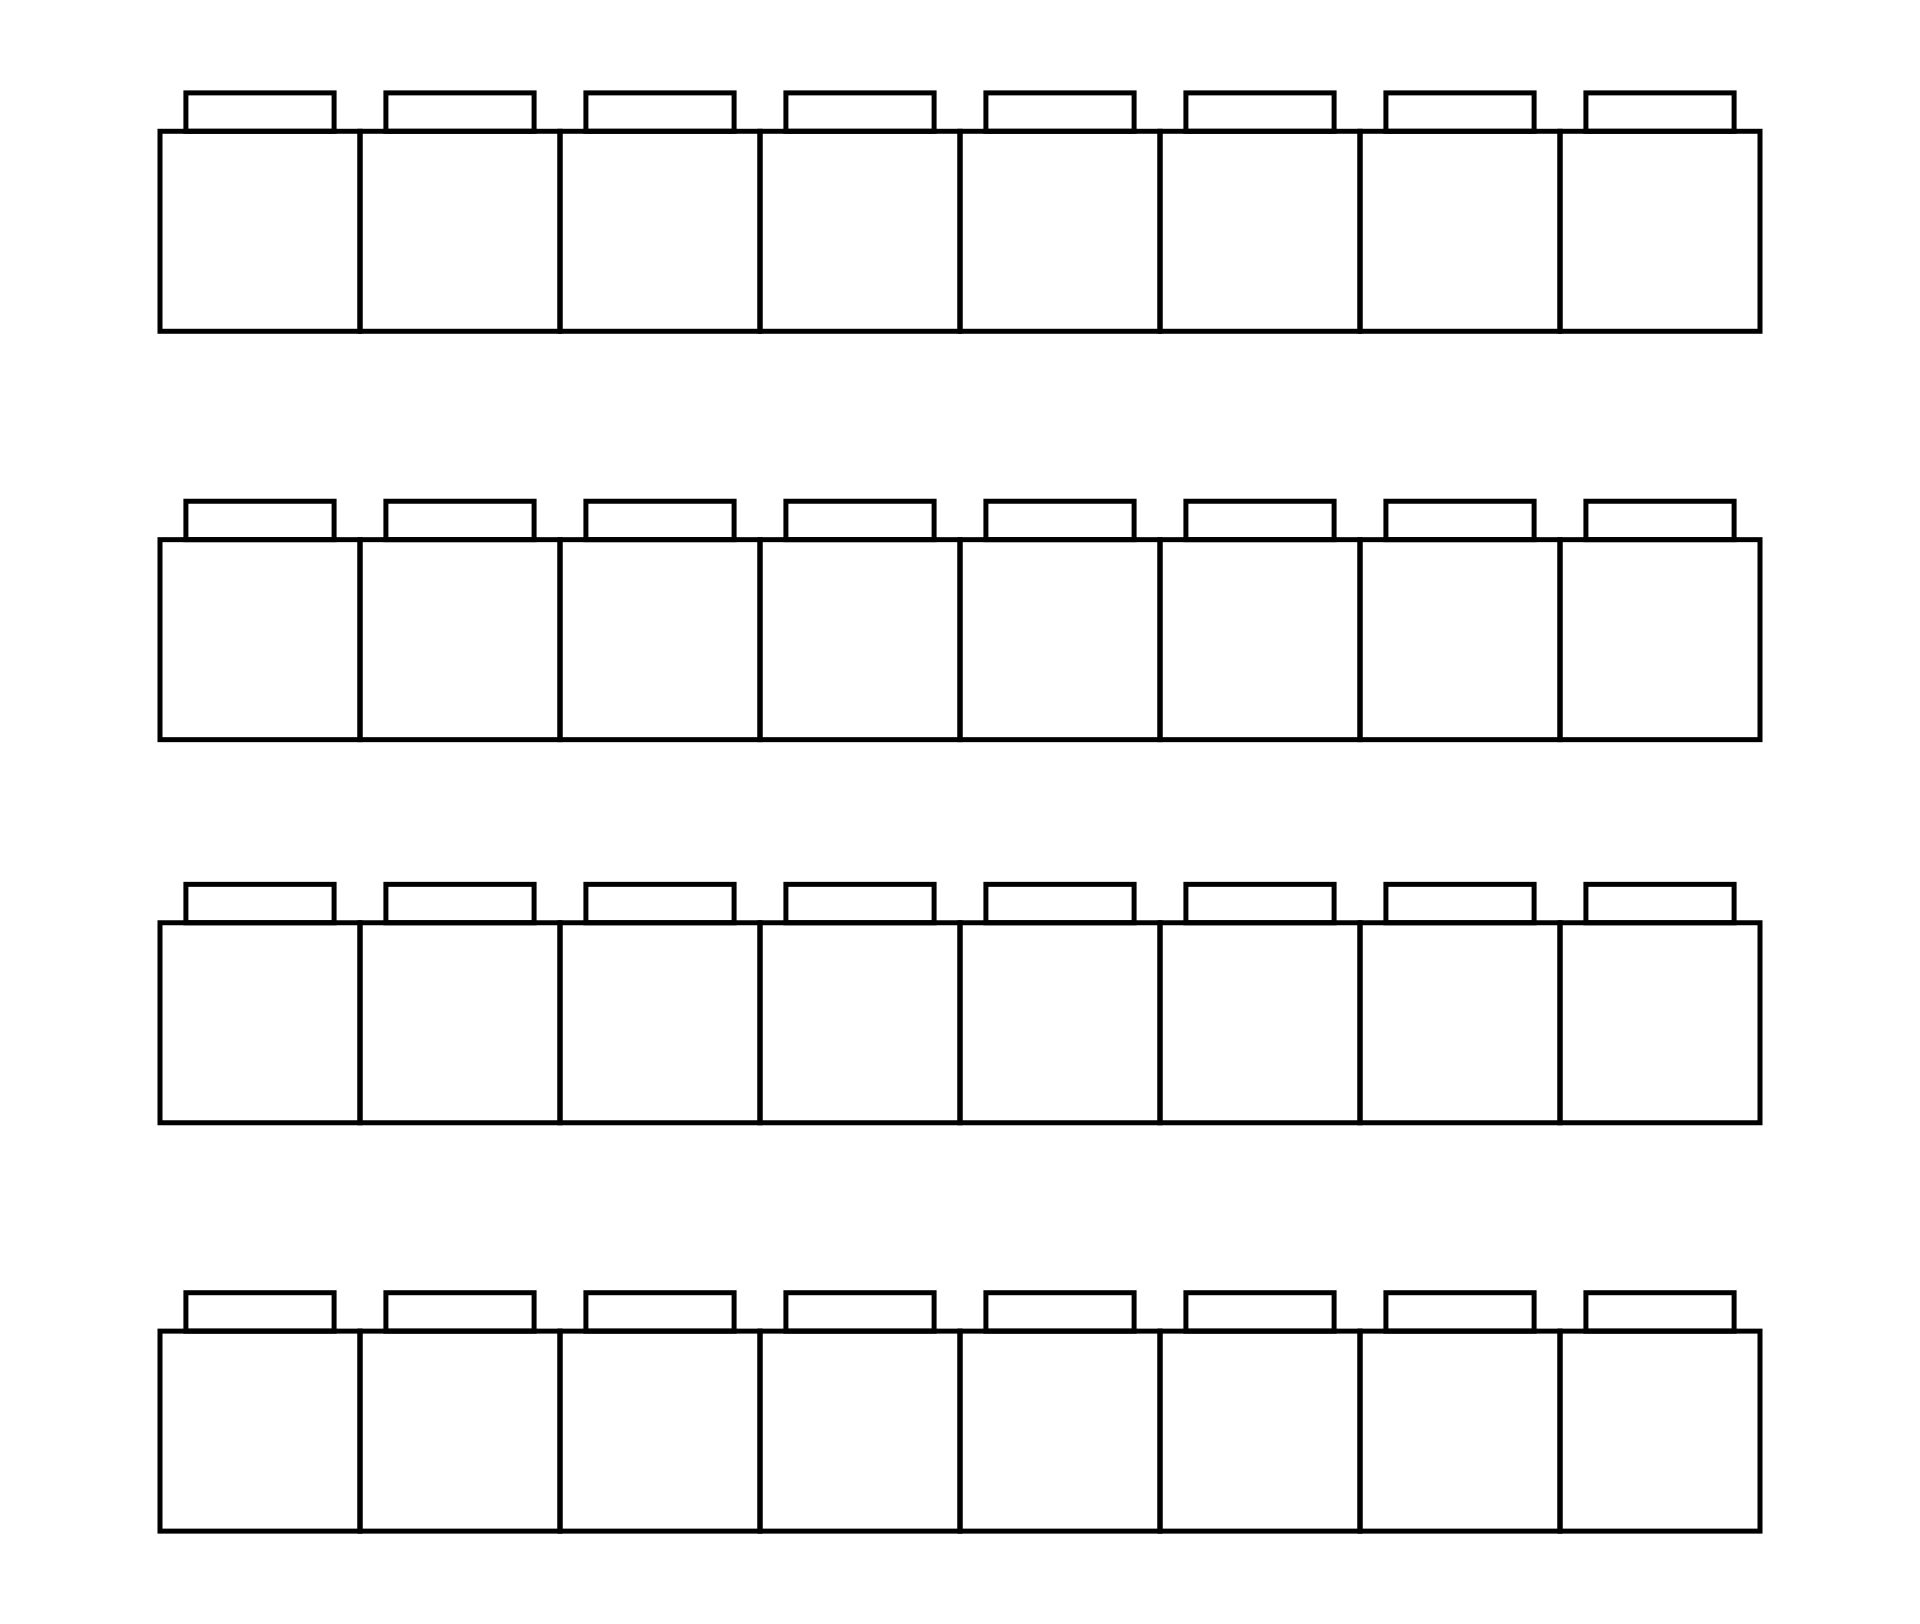 Unifix Cube Template Printable